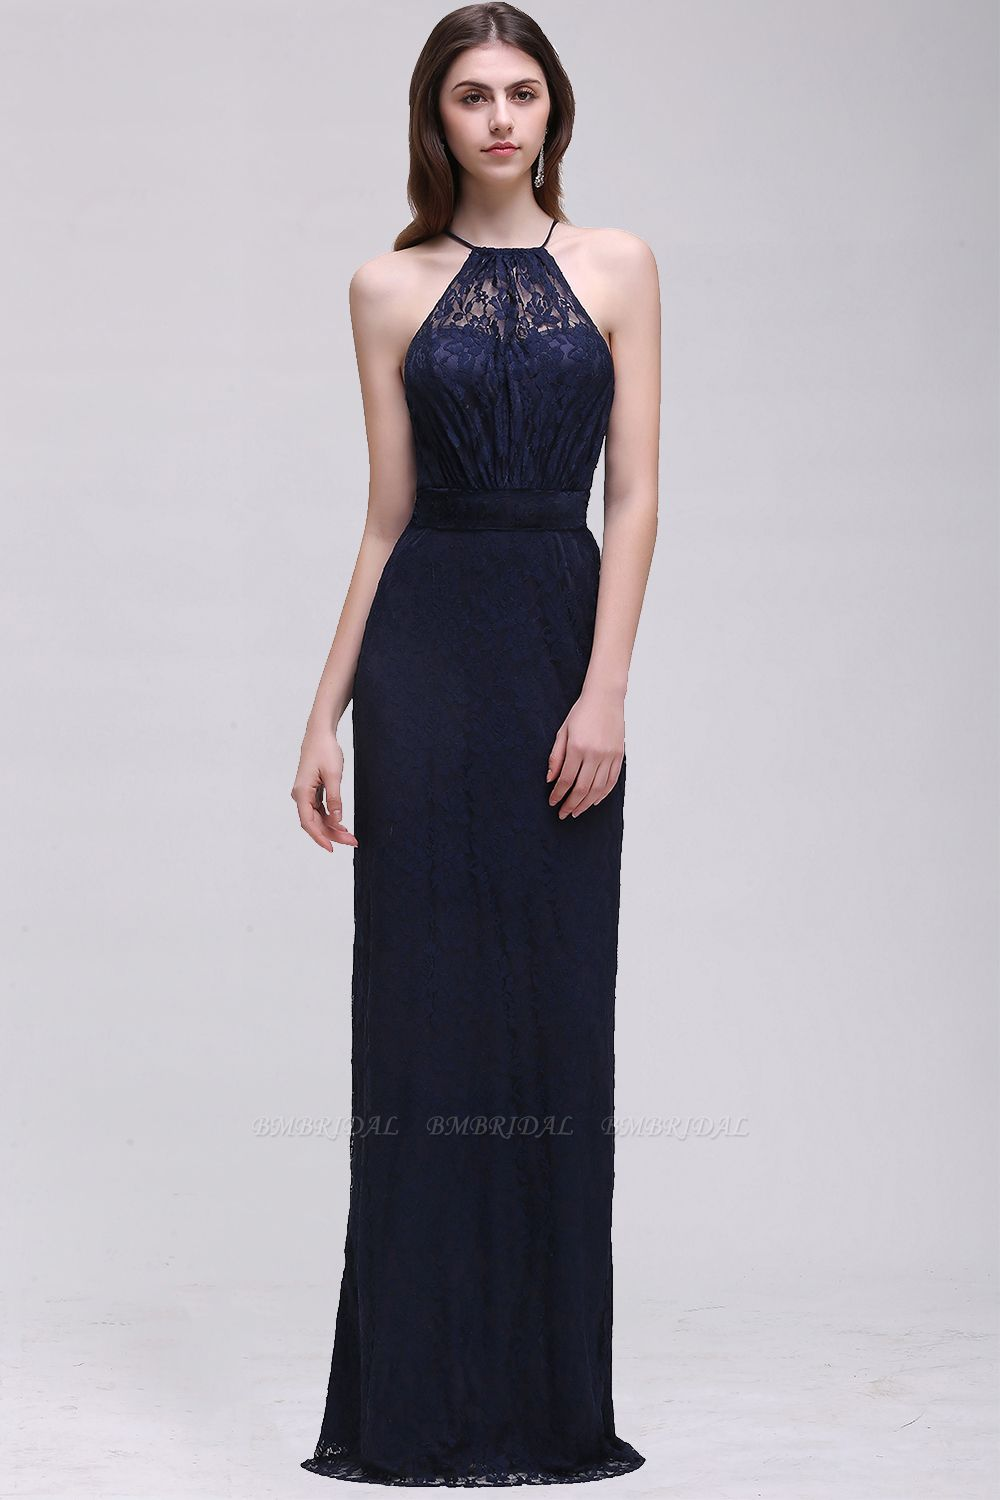 BMbridal Pretty Floor length Navy blue Halter Lace Prom Dress